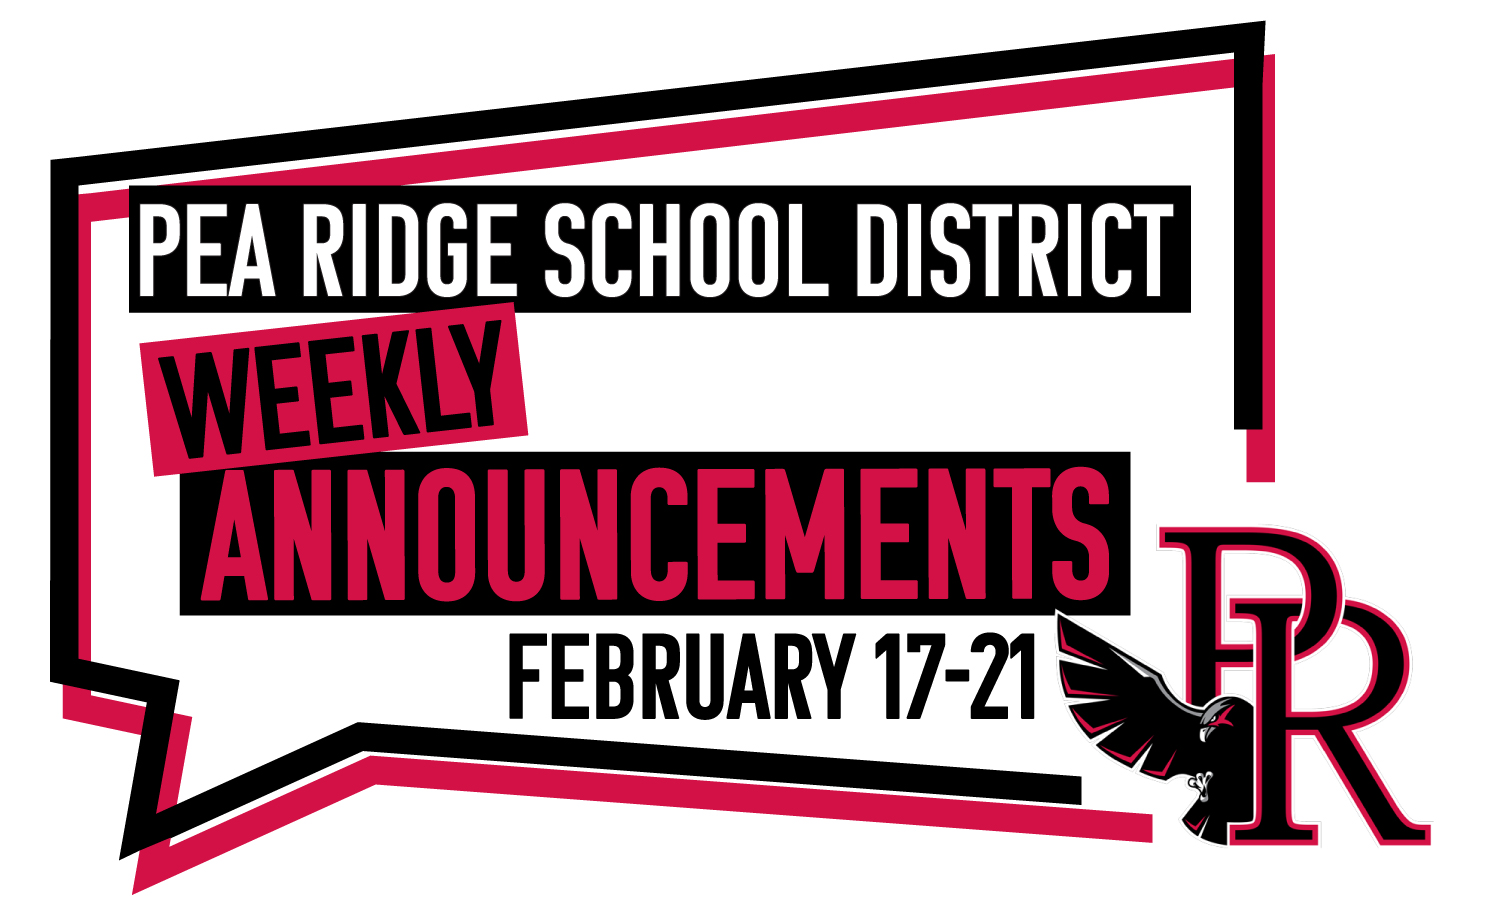 Weekly Announcements Feb. 17-21